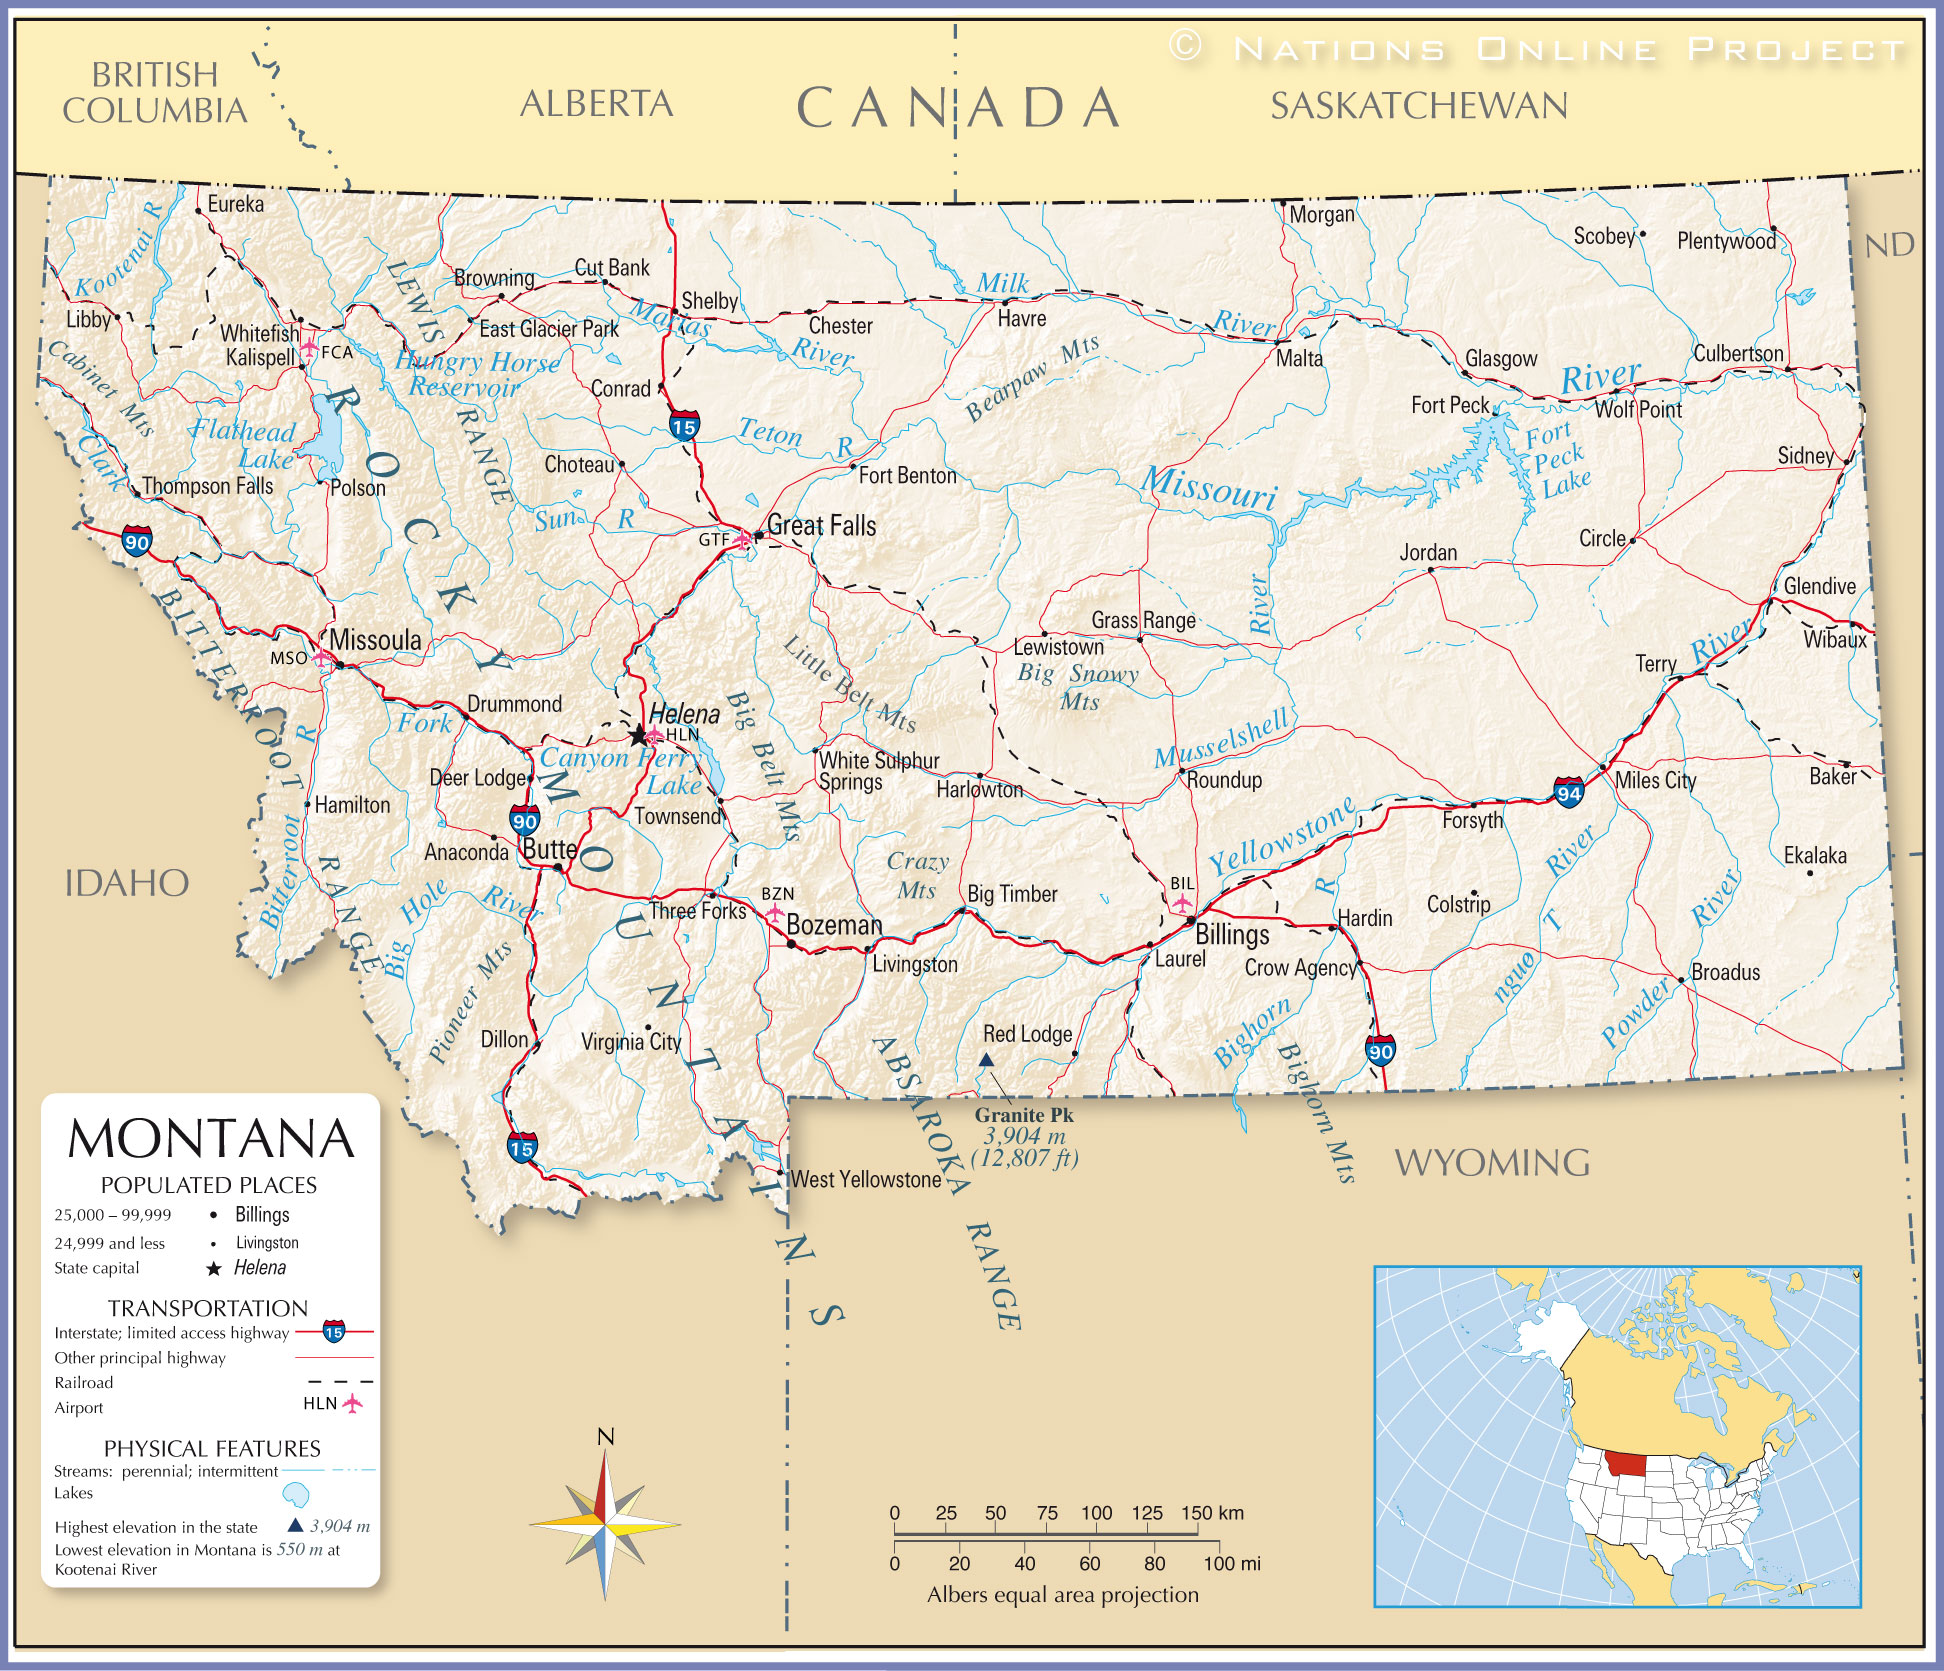 Reference Map Of Montana USA Nations Online Project - Montana political map